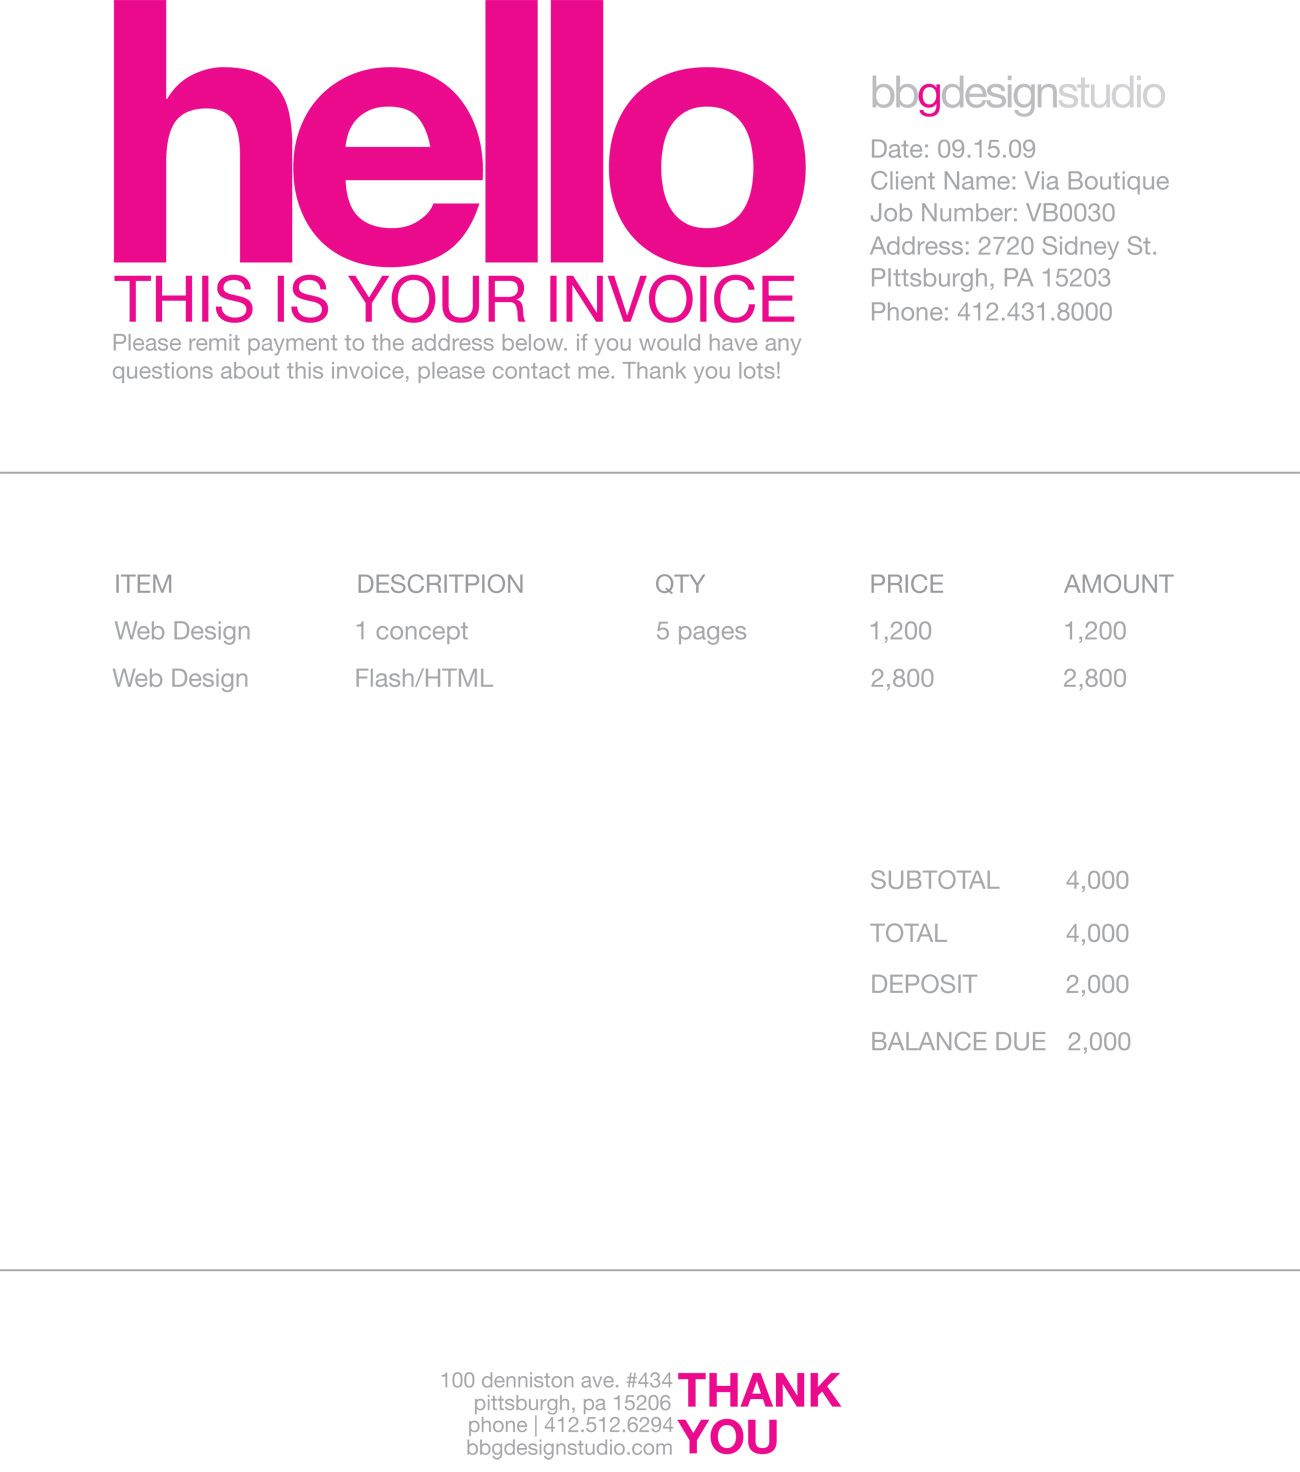 Pxworkoutfreeus  Sweet  Images About Invoice Design On Pinterest With Inspiring Online Invoice Pdf Besides Invoicing Means Furthermore Invoice Making With Beauteous Free Tax Invoice Template Word Also How To Get Invoice Price Of Car In Addition Mazda Invoice And Export Invoice Financing As Well As Car Invoice Price List Additionally Simply Invoices From Pinterestcom With Pxworkoutfreeus  Inspiring  Images About Invoice Design On Pinterest With Beauteous Online Invoice Pdf Besides Invoicing Means Furthermore Invoice Making And Sweet Free Tax Invoice Template Word Also How To Get Invoice Price Of Car In Addition Mazda Invoice From Pinterestcom